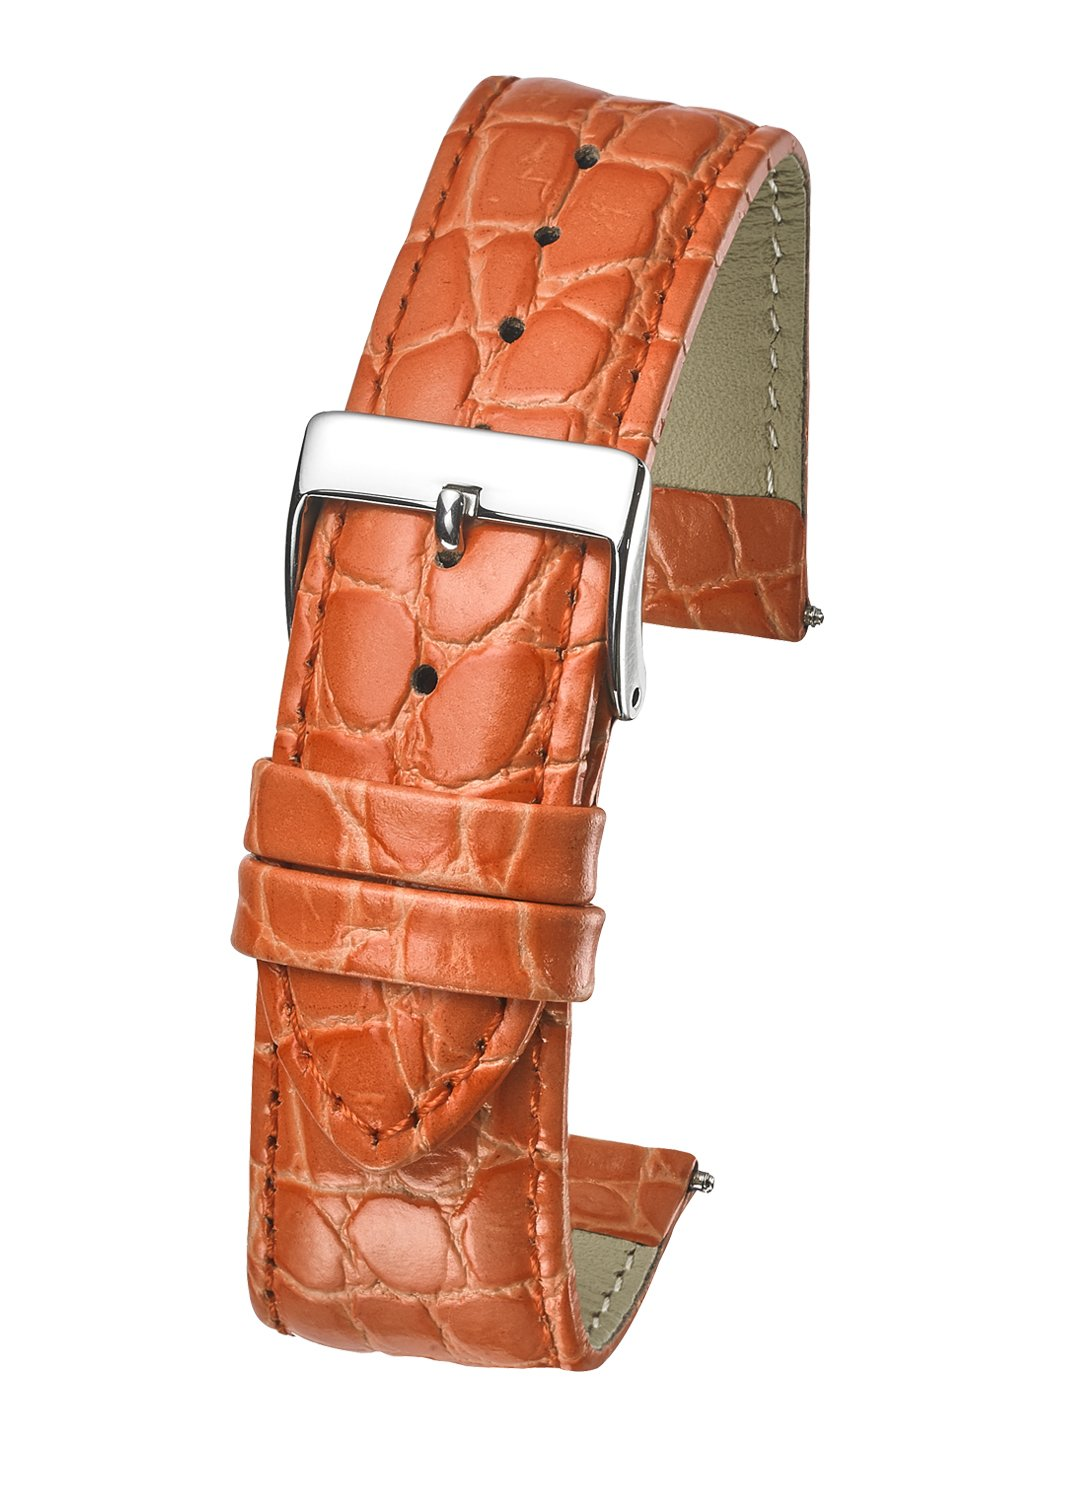 Genuine Leather Watch Band Strap in Shiny Croco Grain Finish - 22mm - Orange